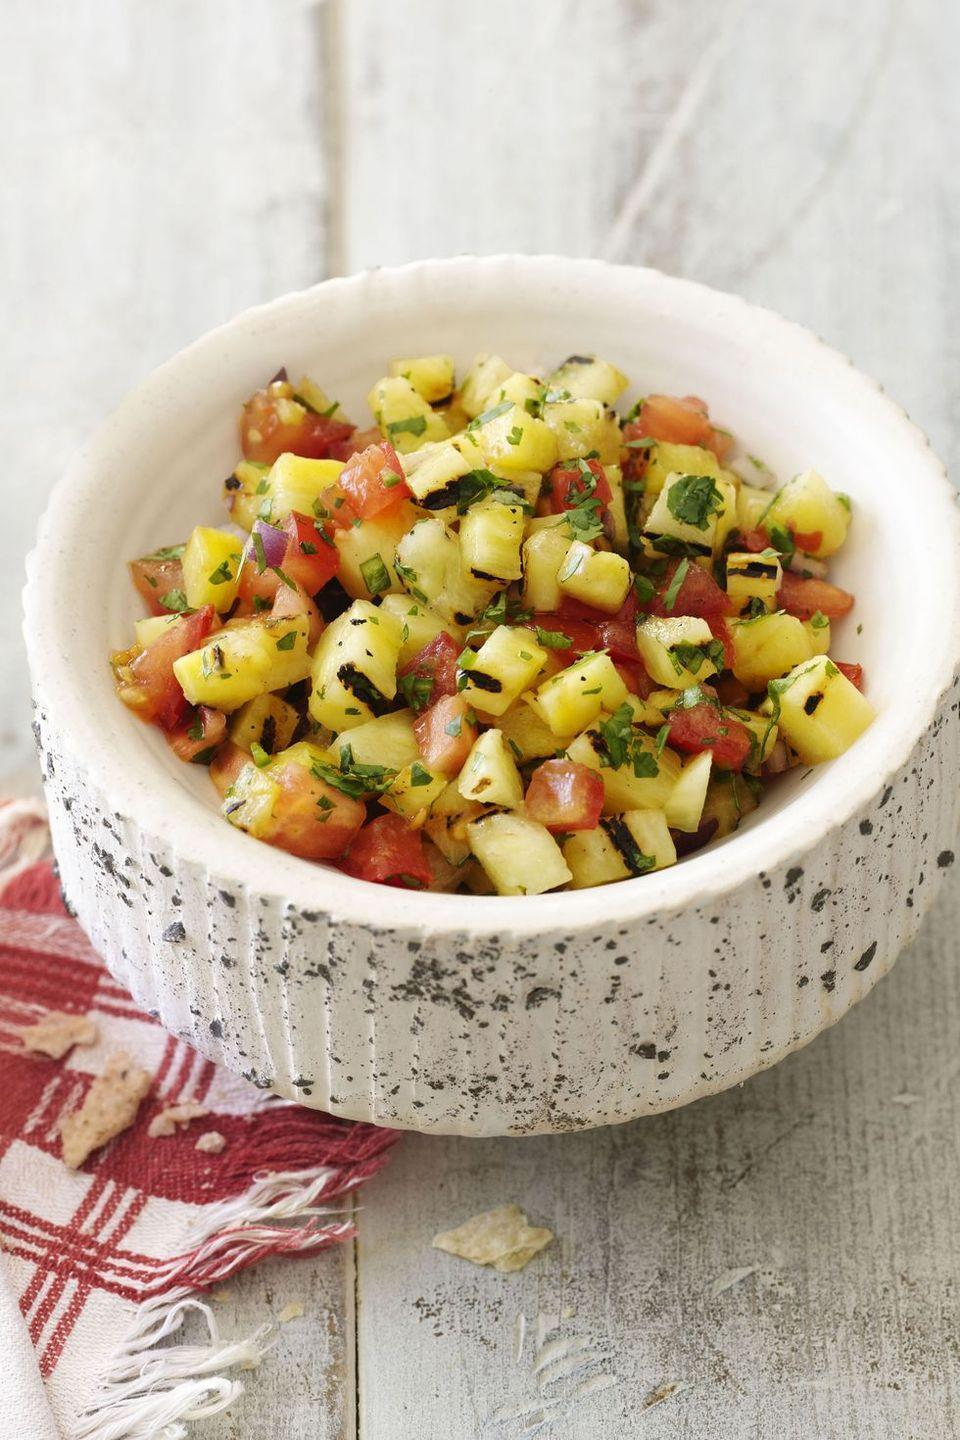 "<p>If you prefer chunky salsa made of out of fresh tomatoes over the jar variety, you've come to the right place.</p><p><em><a href=""https://www.goodhousekeeping.com/food-recipes/a14141/pineapple-serrano-pico-de-gallo-recipe-clv0512/"" rel=""nofollow noopener"" target=""_blank"" data-ylk=""slk:Get the recipe for Pineapple-Serrano Pico de Gallo »"" class=""link rapid-noclick-resp"">Get the recipe for Pineapple-Serrano Pico de Gallo »</a></em></p>"